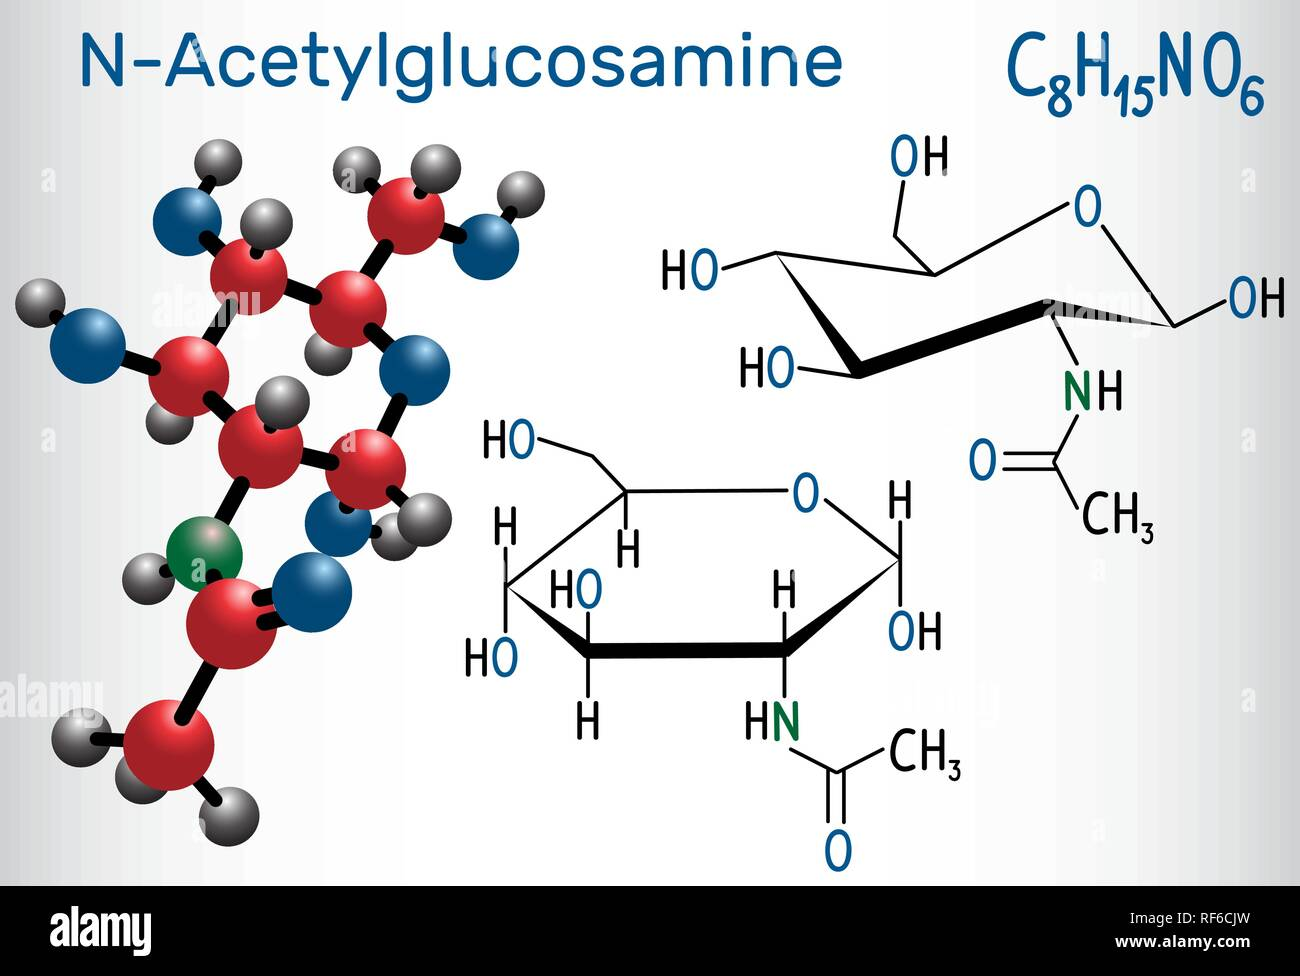 N-Acetylglucosamine (NAG) molecule, is the monomeric unit of the chitin and polymerized with glucuronic acid, it forms hyaluronic acid. Structural che Stock Vector